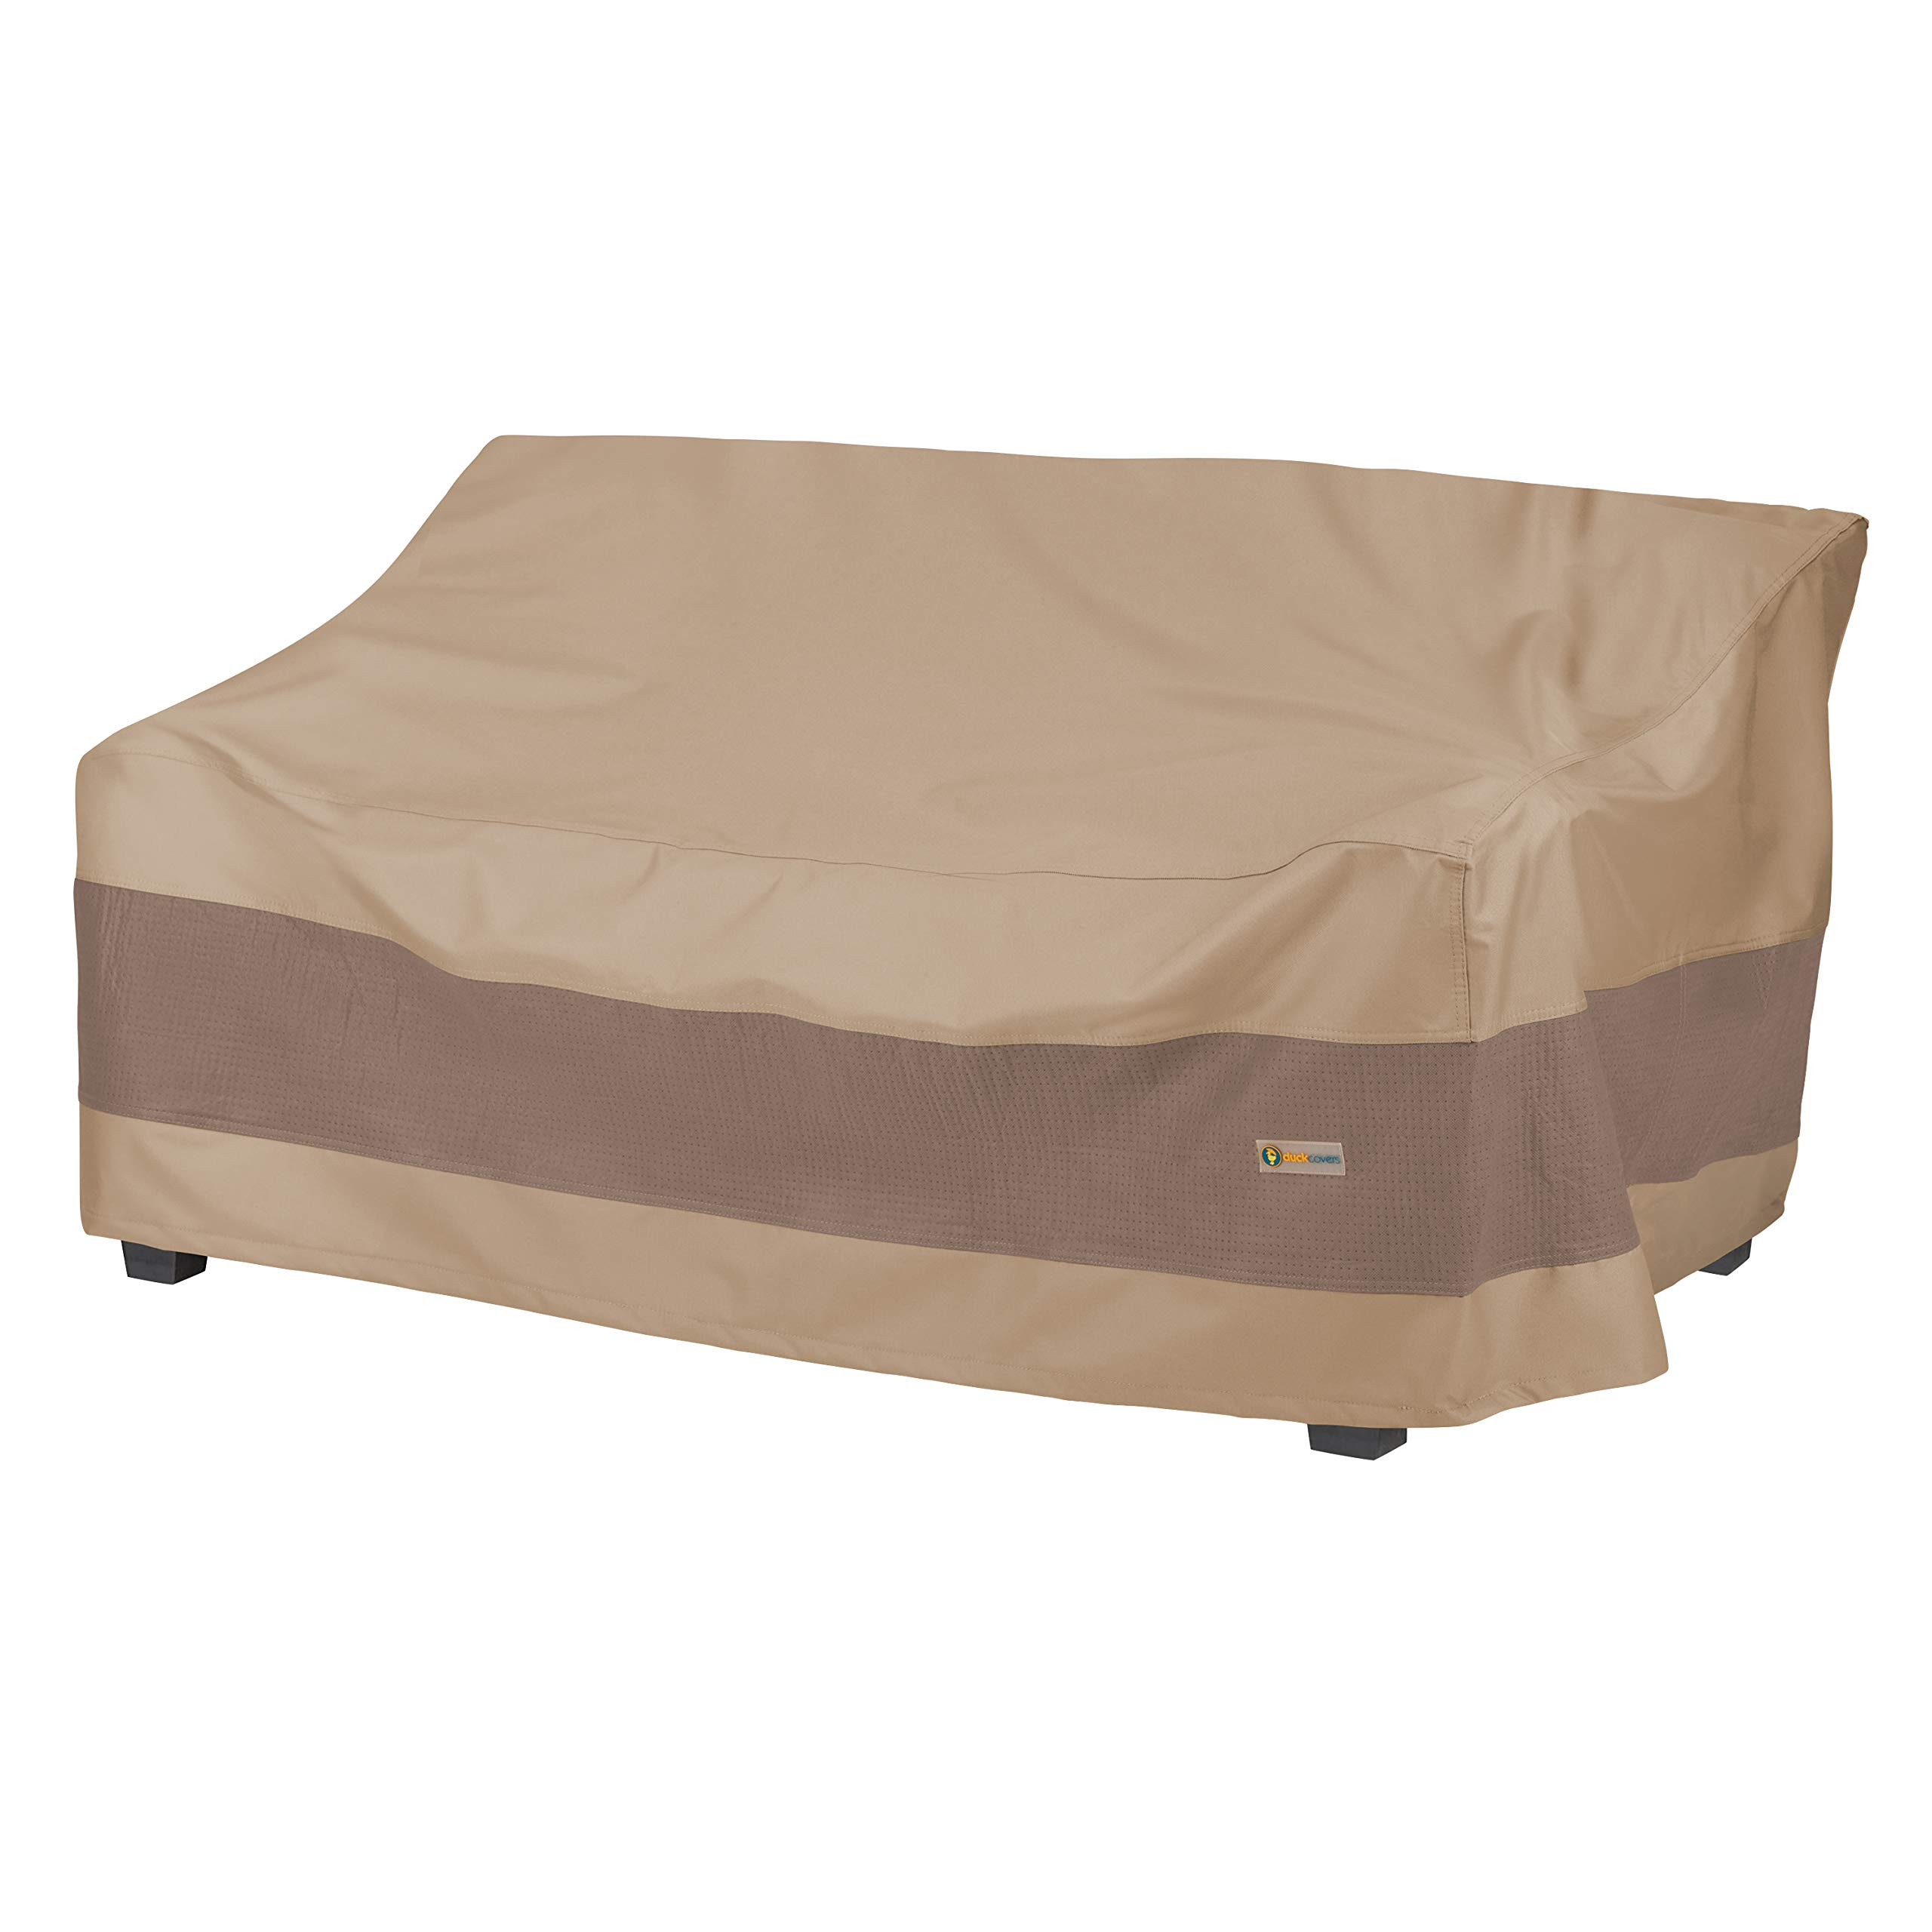 Duck Covers Elegant Patio Sofa Cover, 93-Inch by Duck Covers